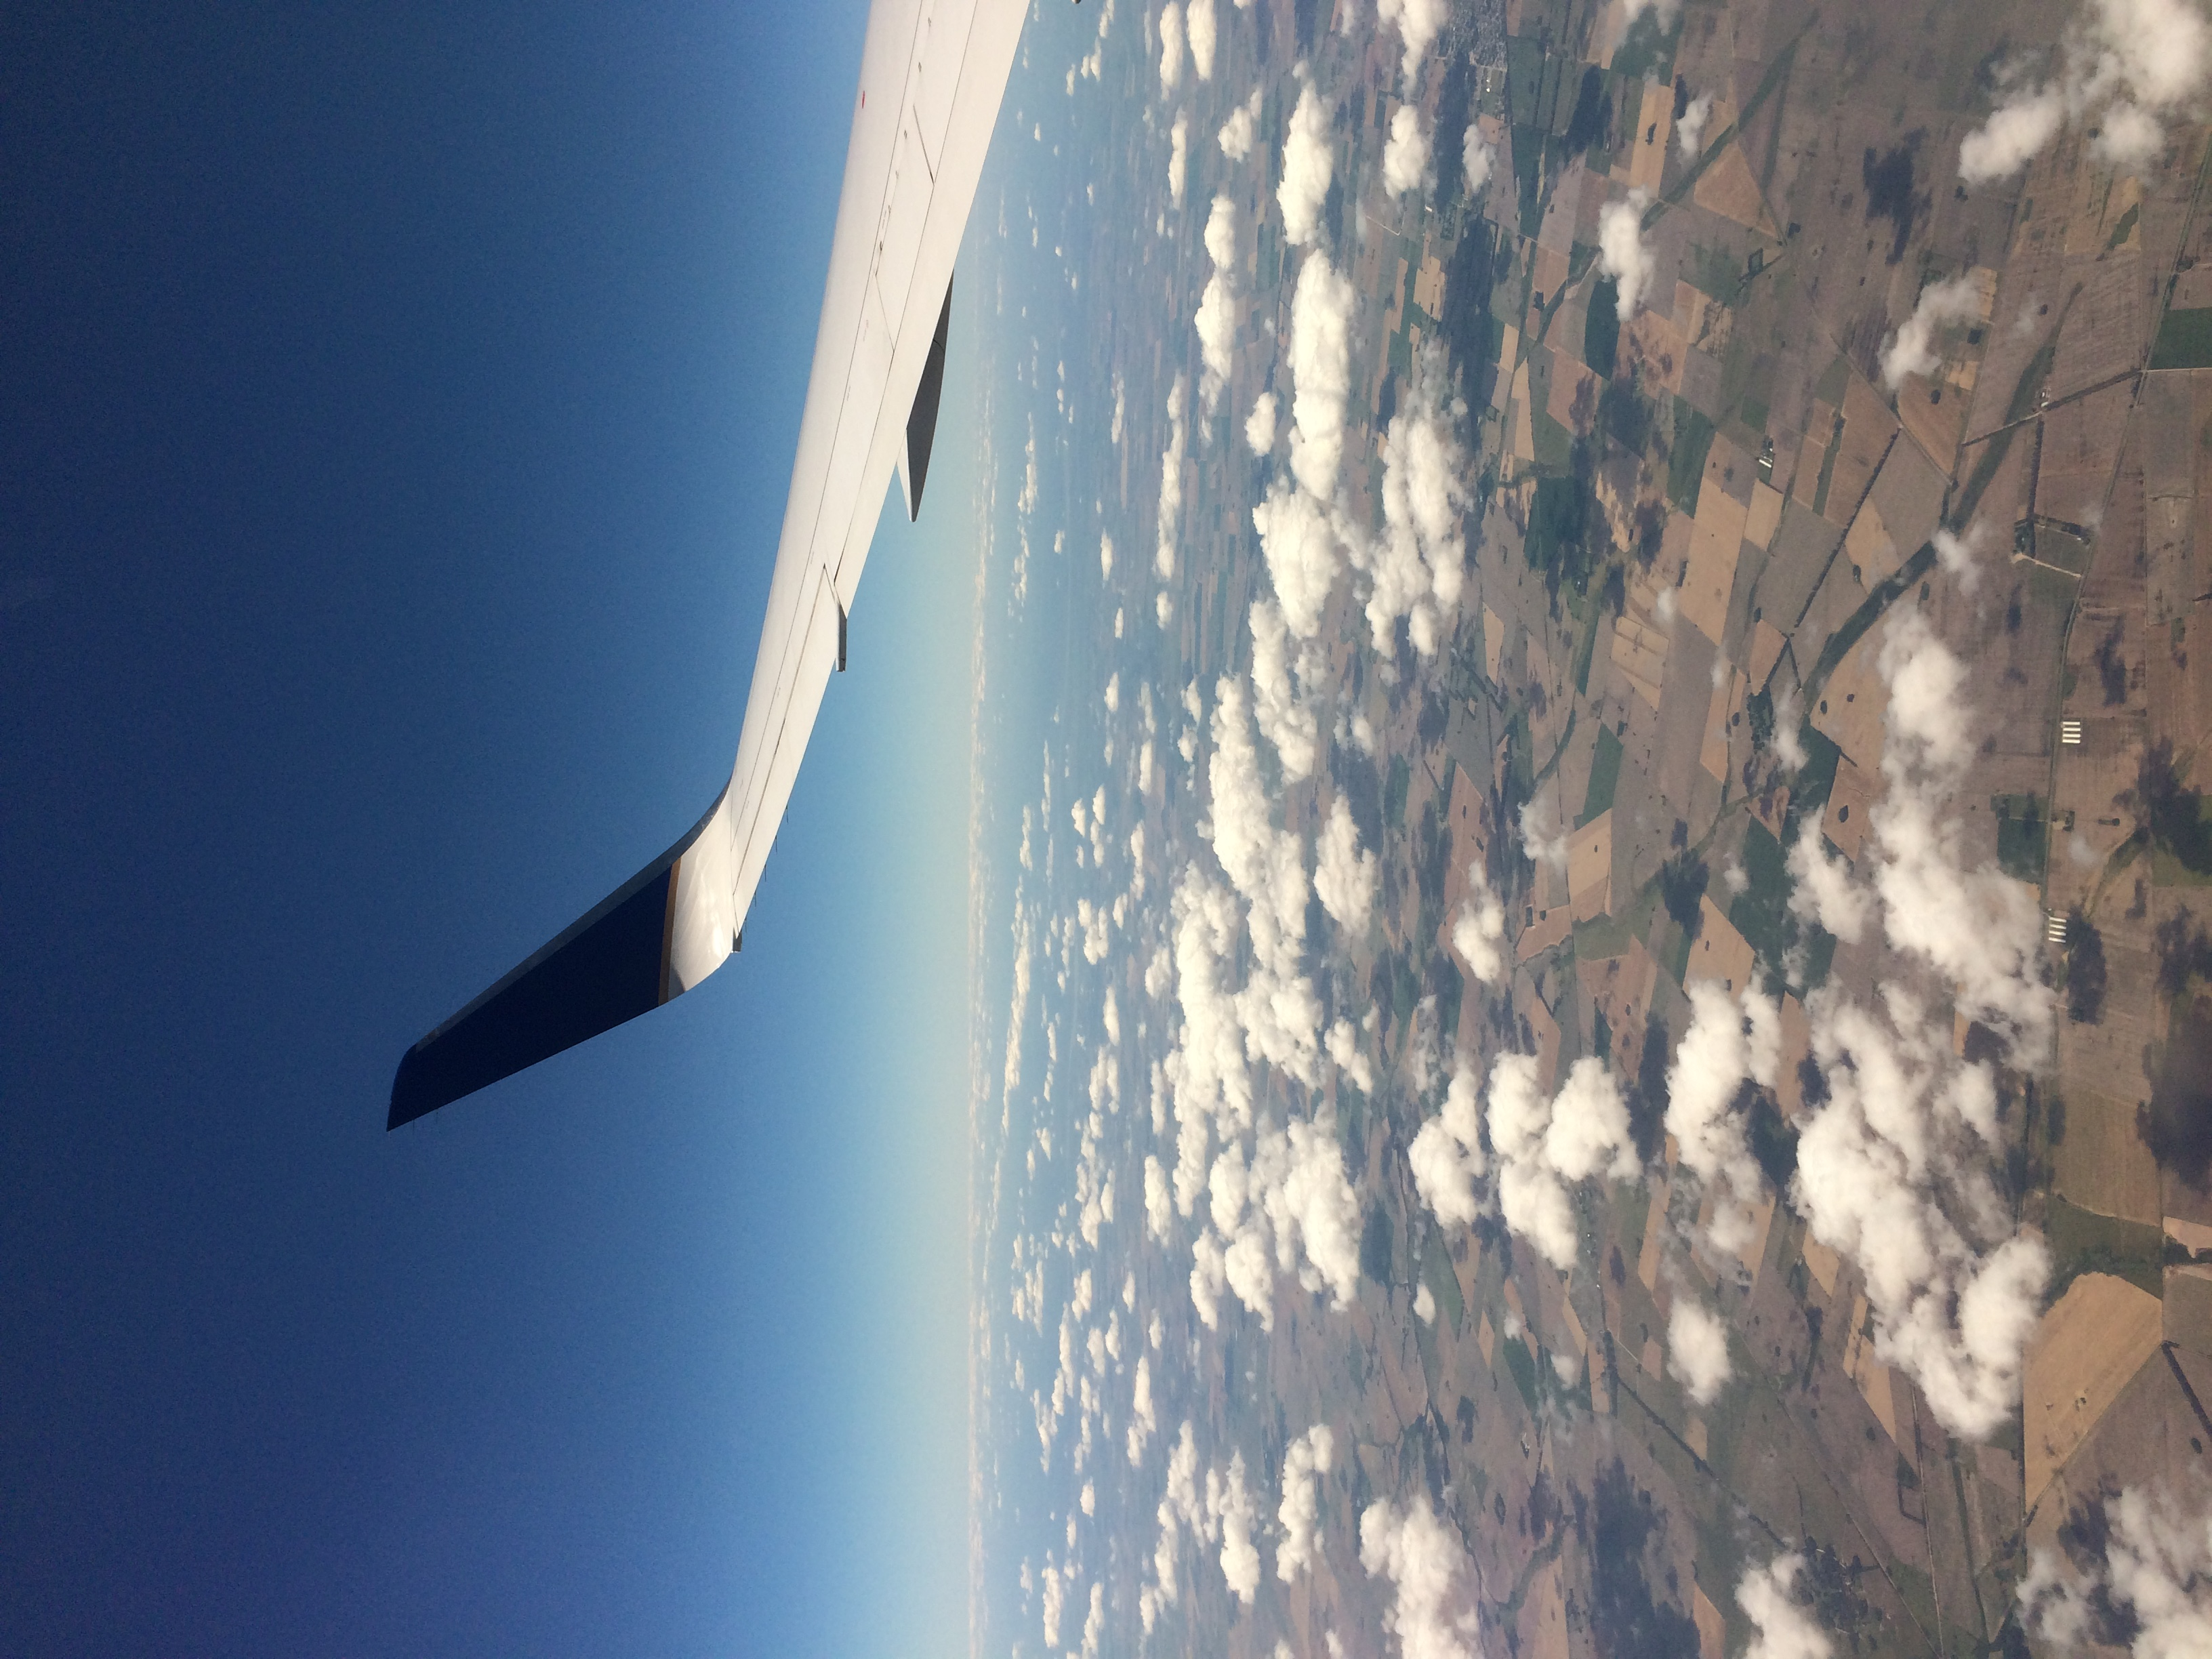 Right before landing in buenos aires